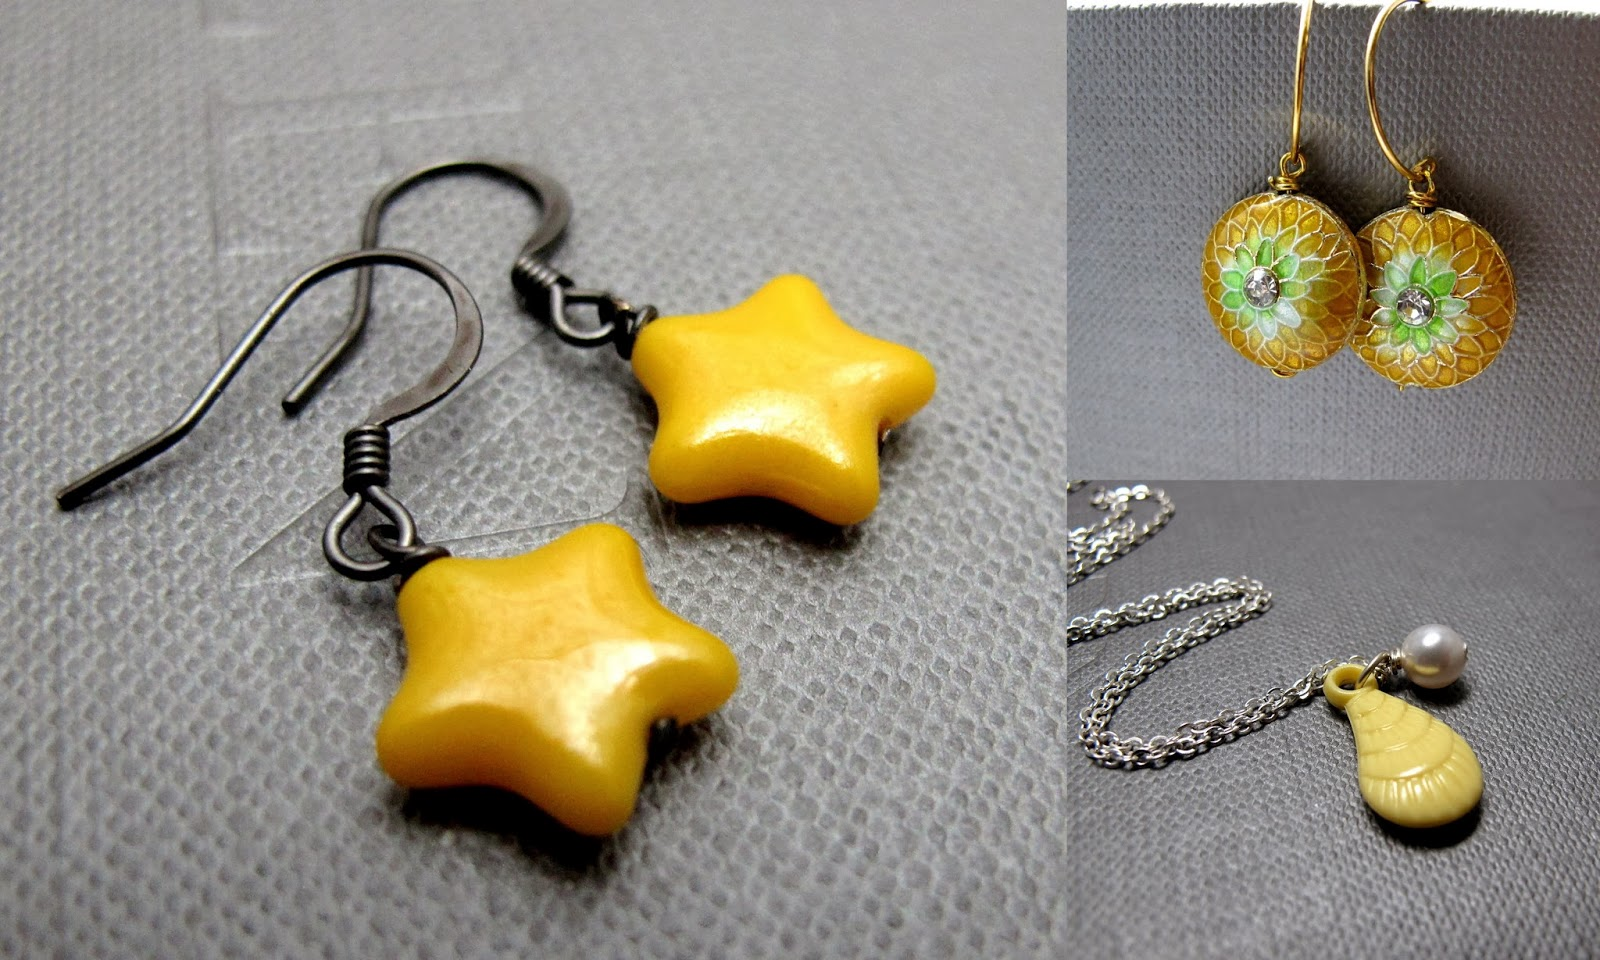 https://www.etsy.com/shop/Piggy/search?search_query=yellow&order=date_desc&view_type=list&ref=shop_search